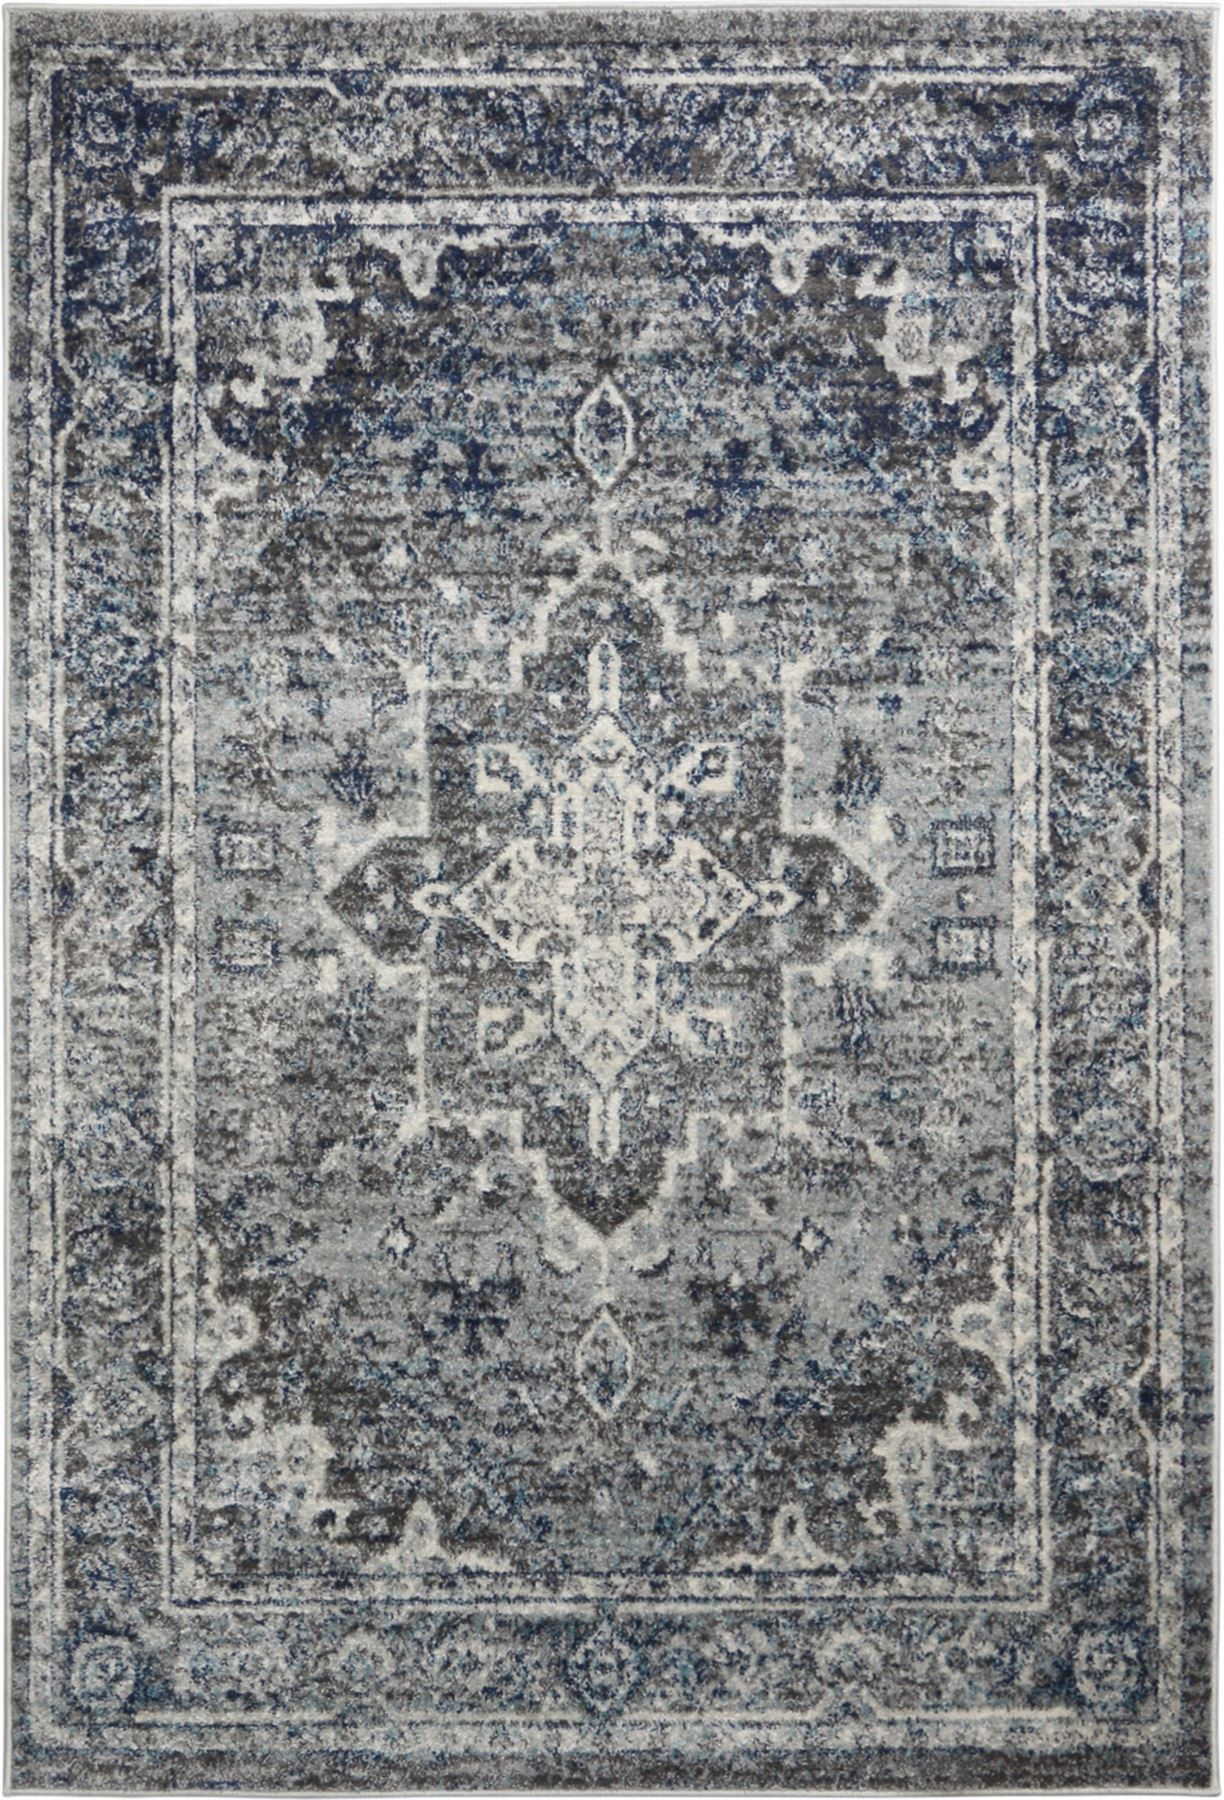 Large-Quality-Traditional-Area-Rug-Assorted-Persian-Floral-Designs-Carpet-Runner thumbnail 72